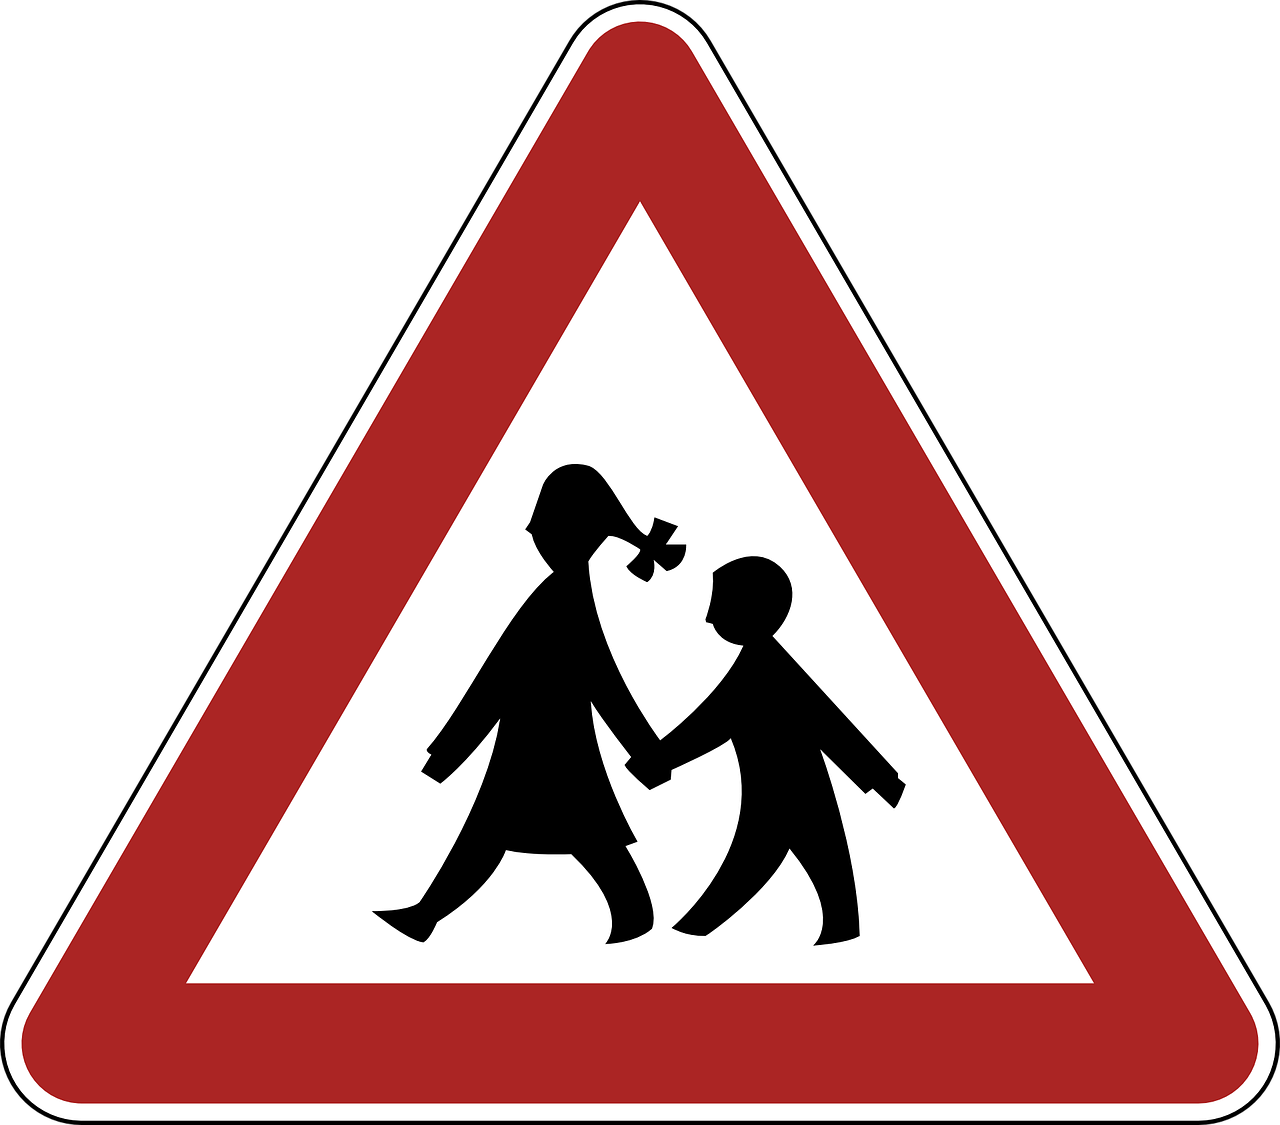 children,danger,warning,road sign,traffic,germany,regulatory,sign,symbol,transportation,free vector graphics,free pictures, free photos, free images, royalty free, free illustrations, public domain